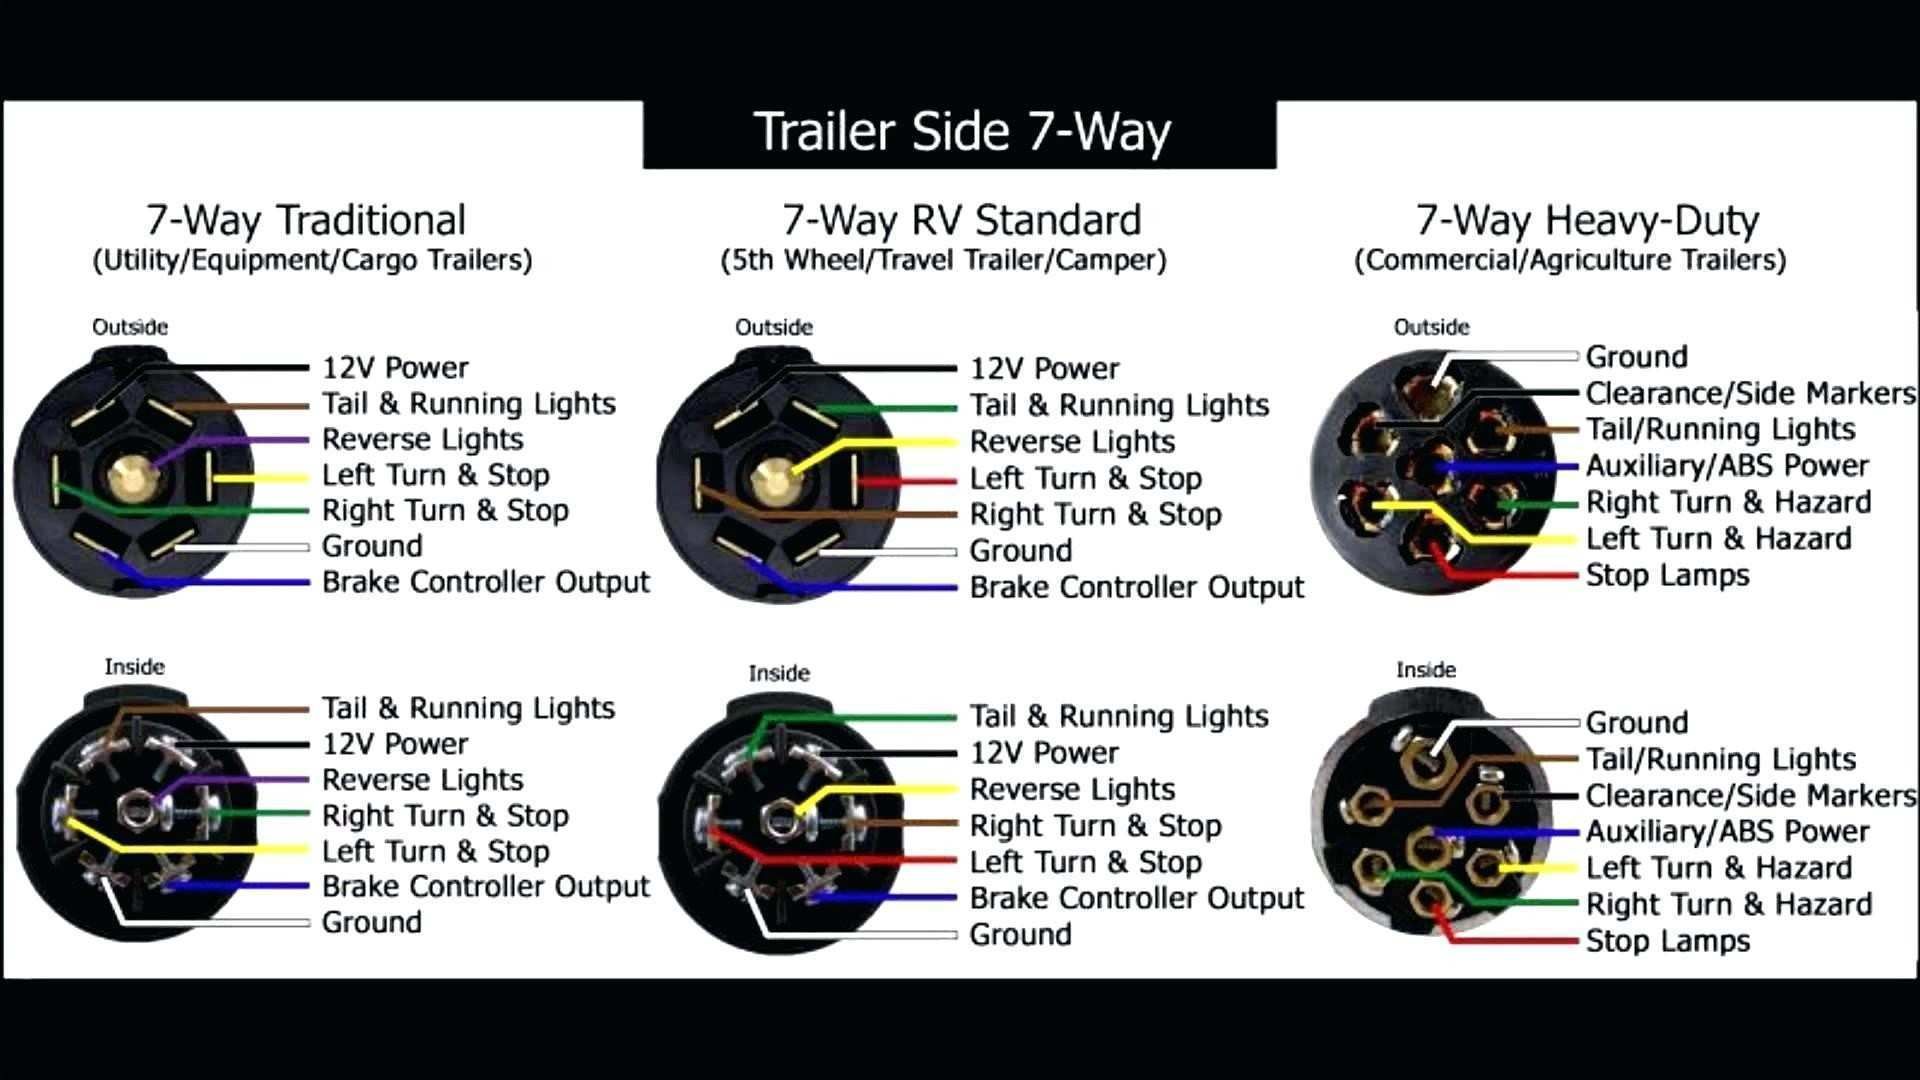 7 Blade Wiring Harness | Wiring Library - Trailer Connector Wiring Diagram 7-Way